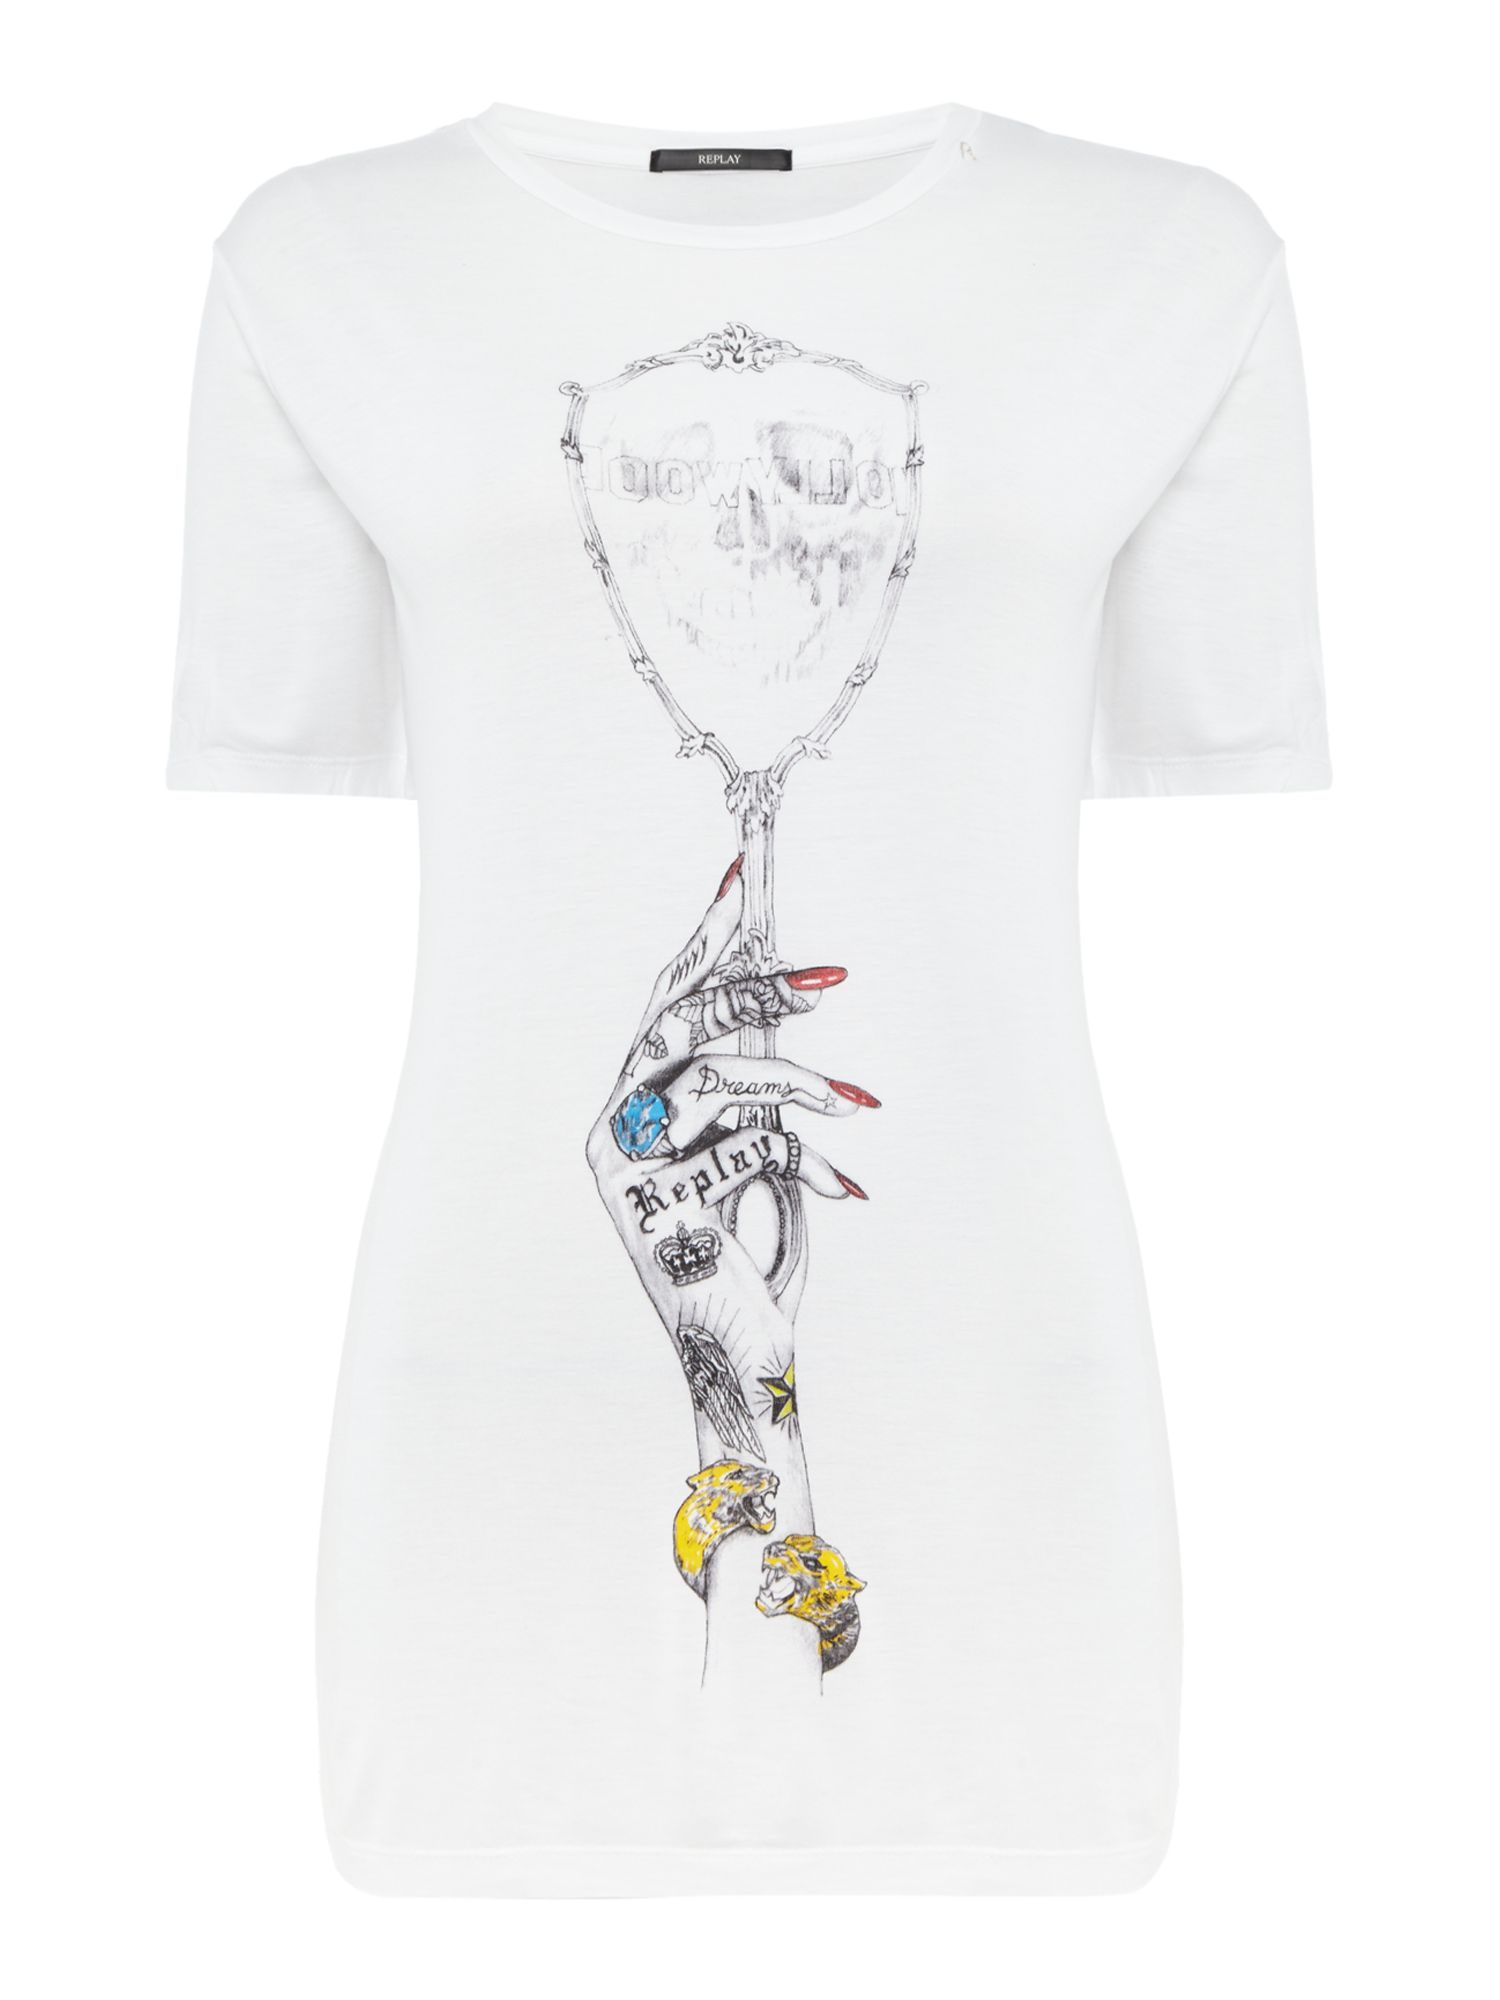 Replay Hand-drawn print T-shirt, White